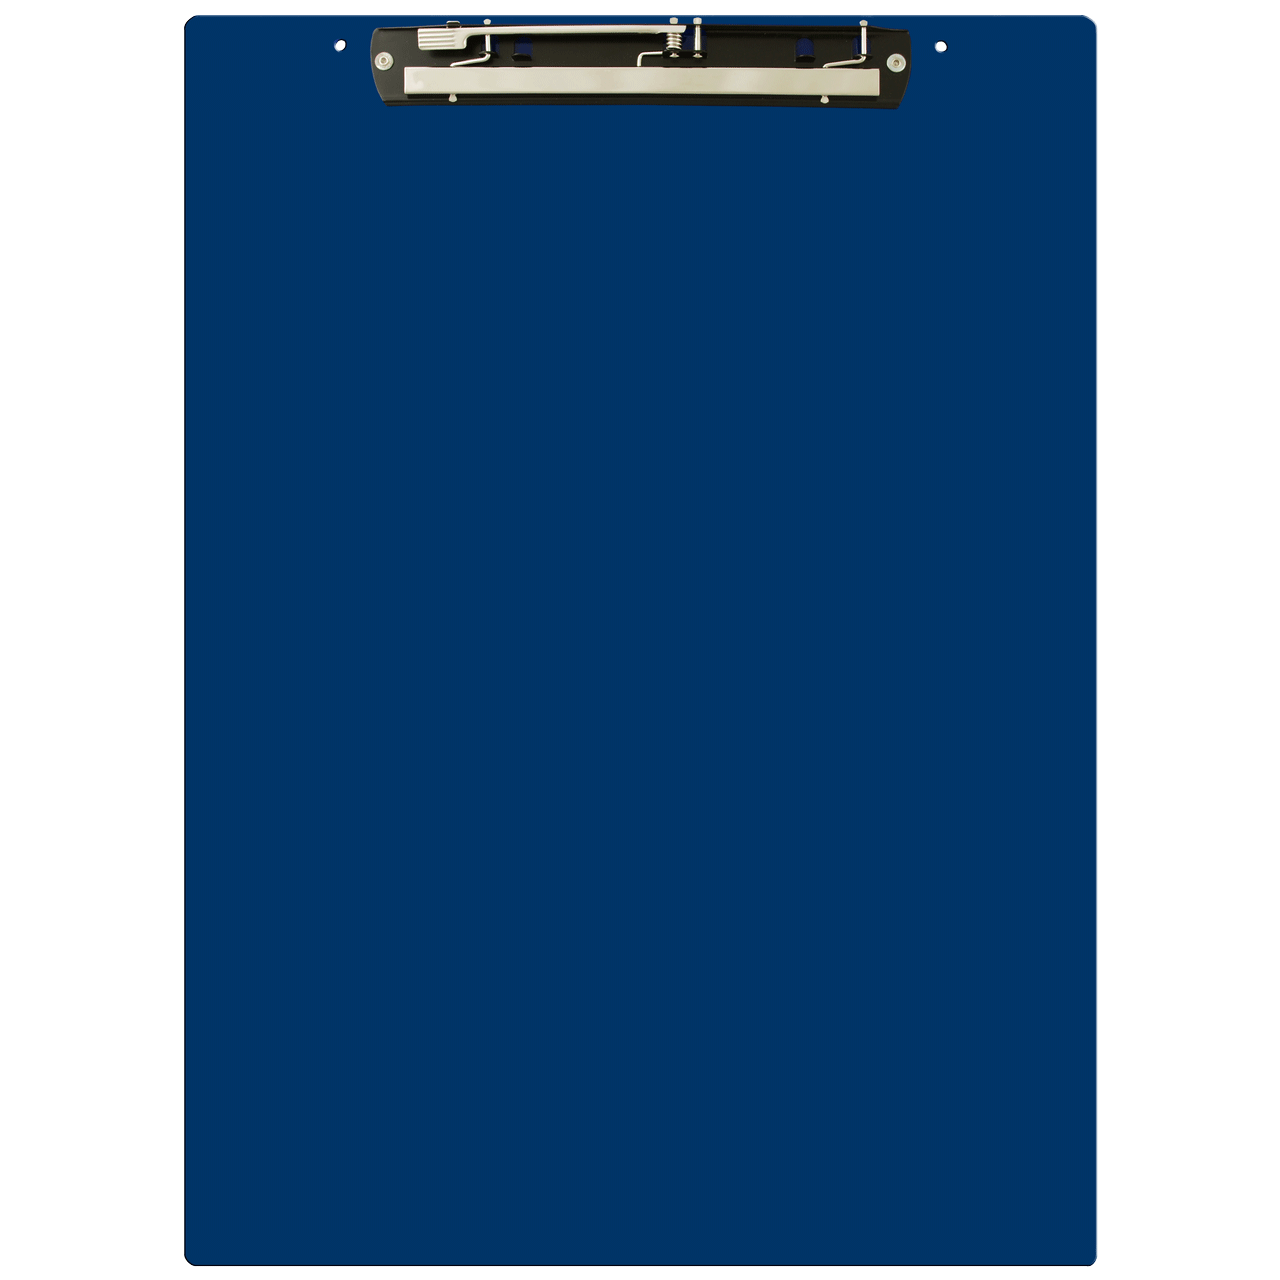 clipart freeuse drawing clipboard angled #111657960